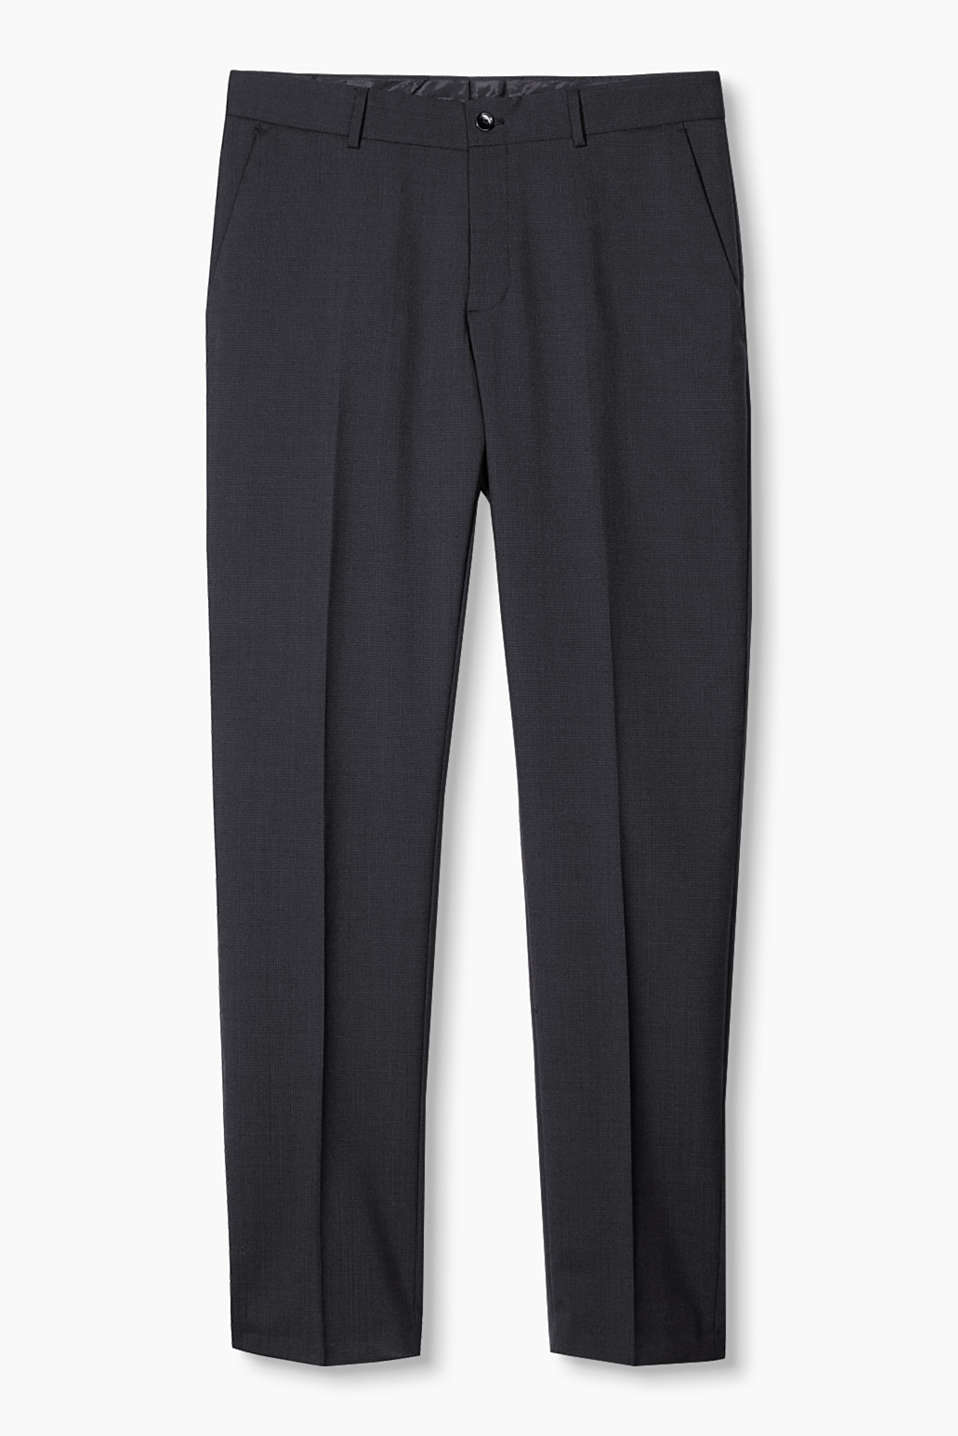 Suit up! Fine thread checks give these premium suit trousers a timeless and elegant look.